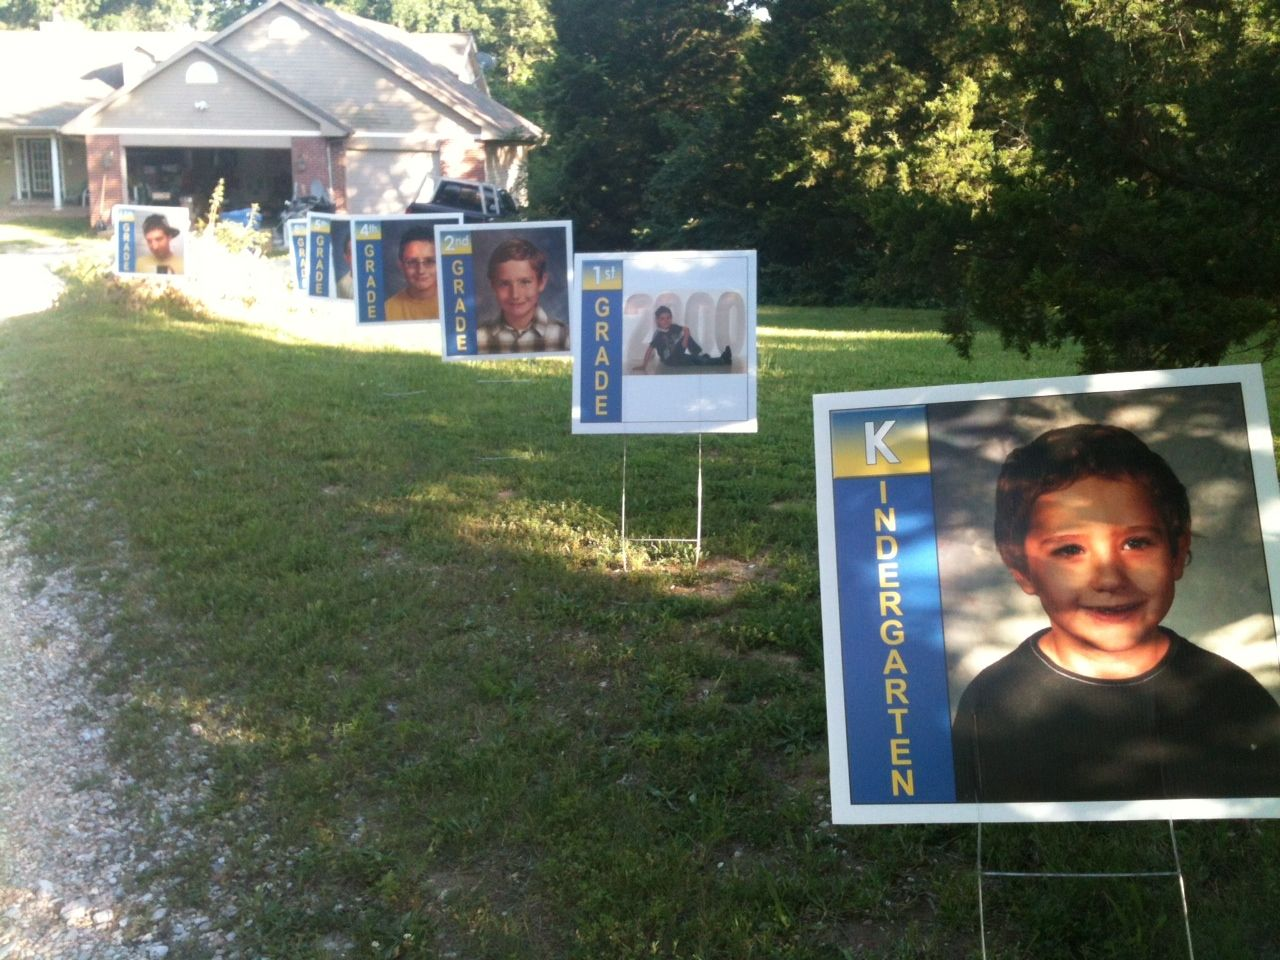 Graduation party ideas sign boards driveways and kindergarten my sister in law took pictures from kindergarten thru senior and put them on sign board we decorated the driveway to the house for my sons graduation biocorpaavc Images